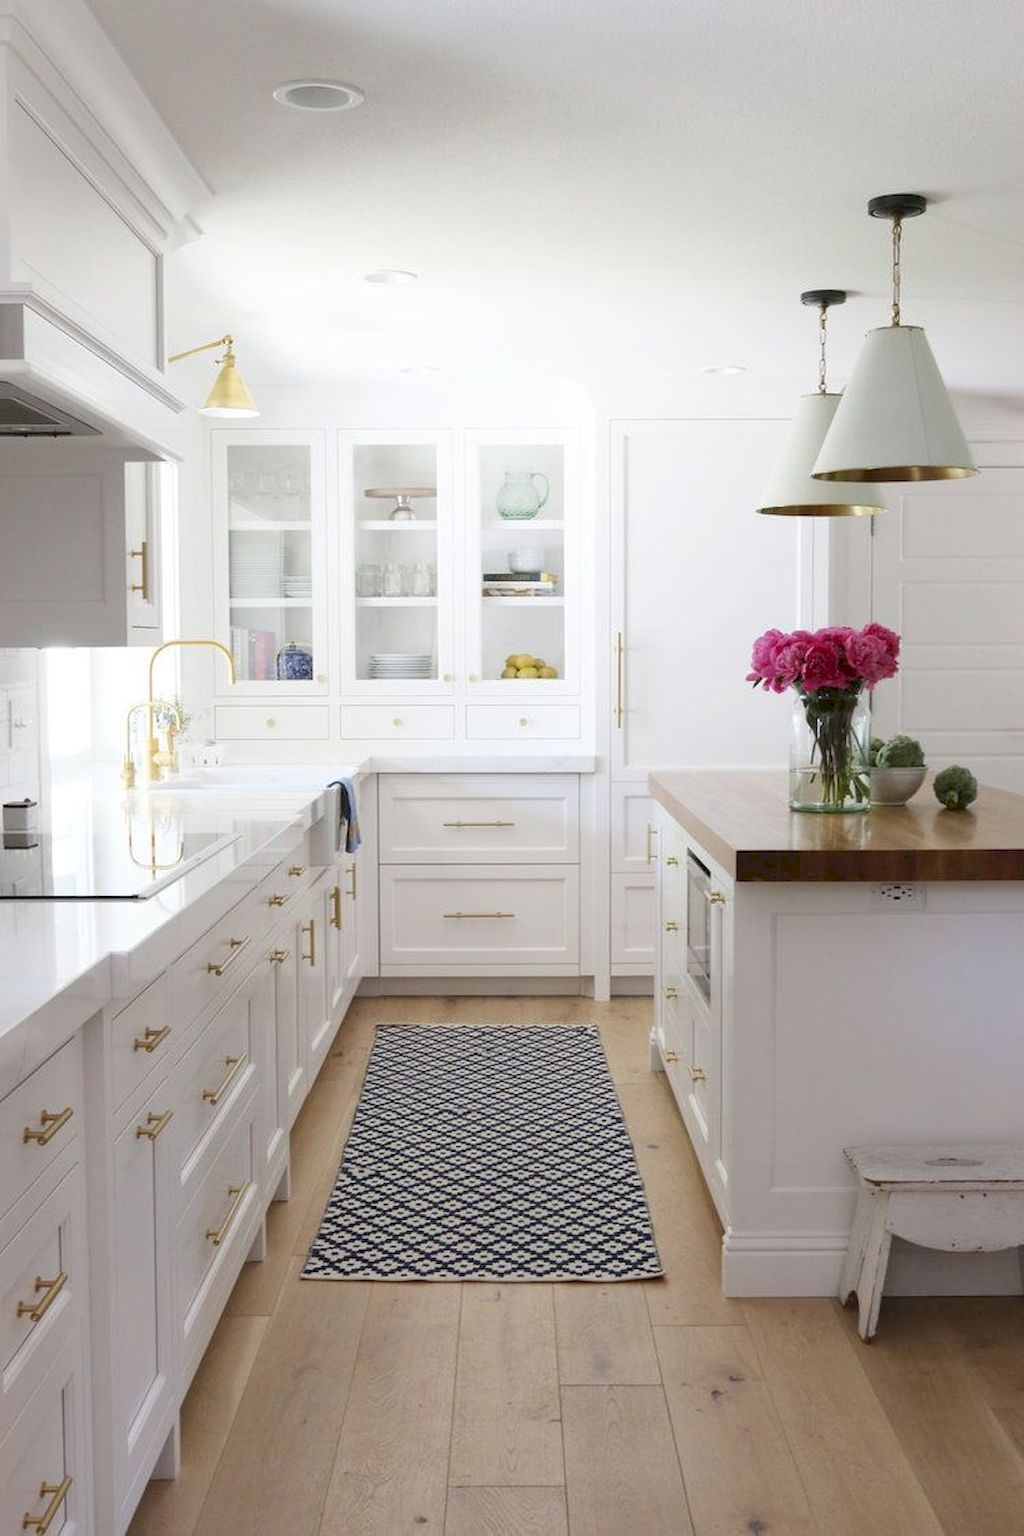 Best Rustic Farmhouse Kitchen Cabinets In List 36 Kitchen Design Kitchen Inspirations